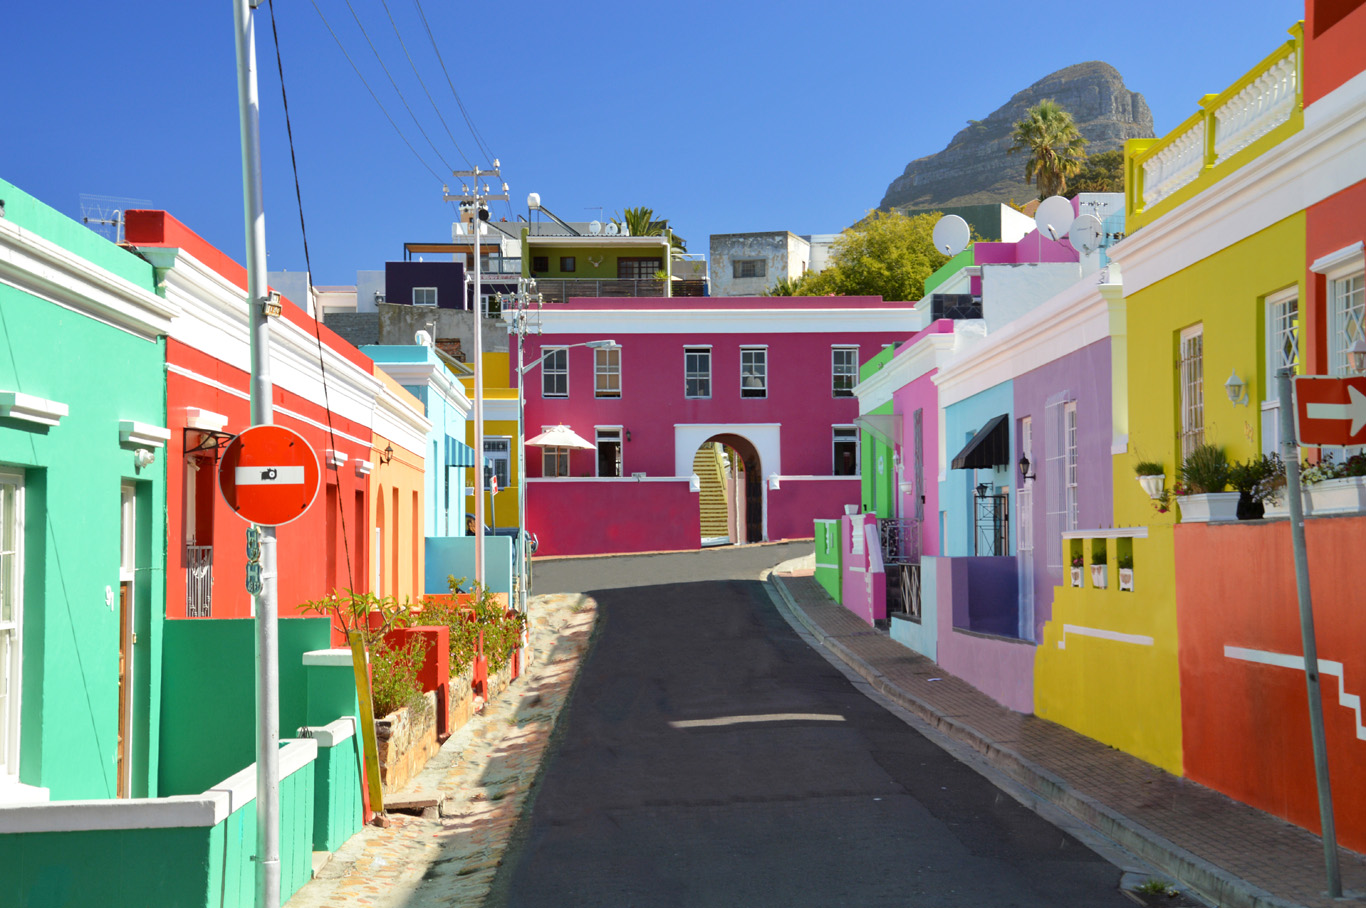 Muslim friendly winter holiday destinations - Bo Kaap